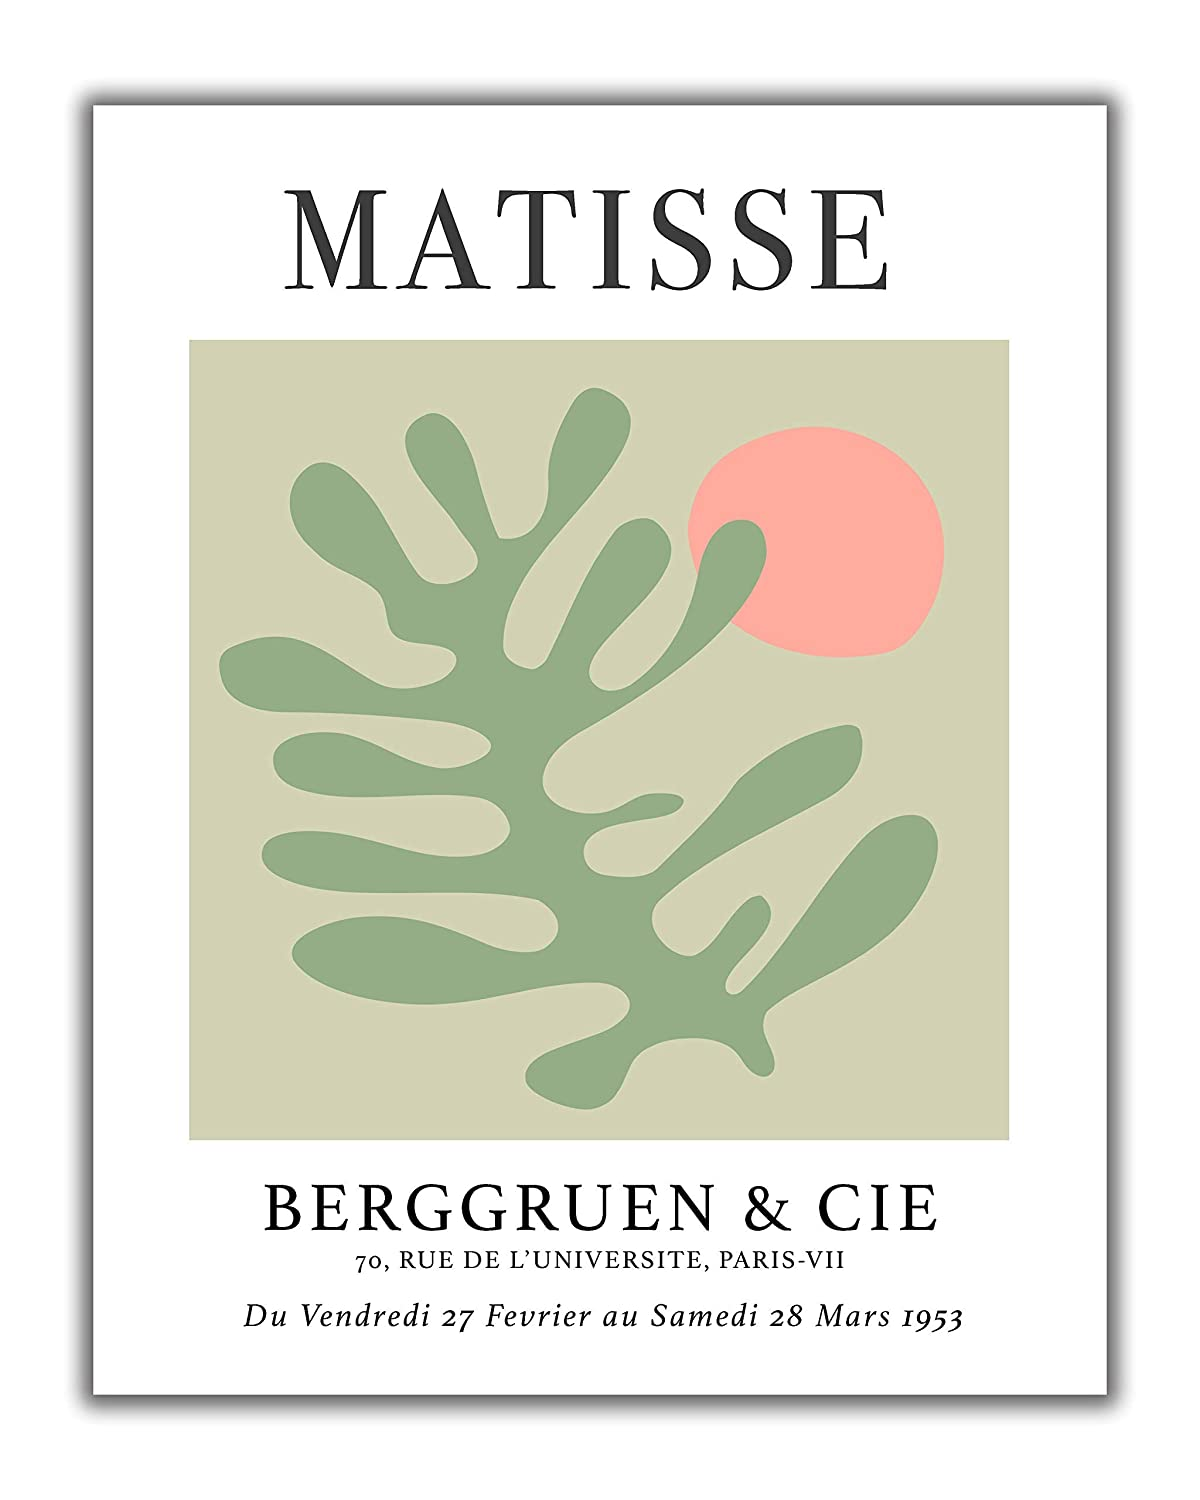 Matisse-Inspired No.16 Exhibition Wall Art Print. 11x14 UNFRAMED. Abstract, Minimalist Modern Wall Decor. Cut-Out Botanical Shapes in Shades of Sage Green & Pink on Gray.